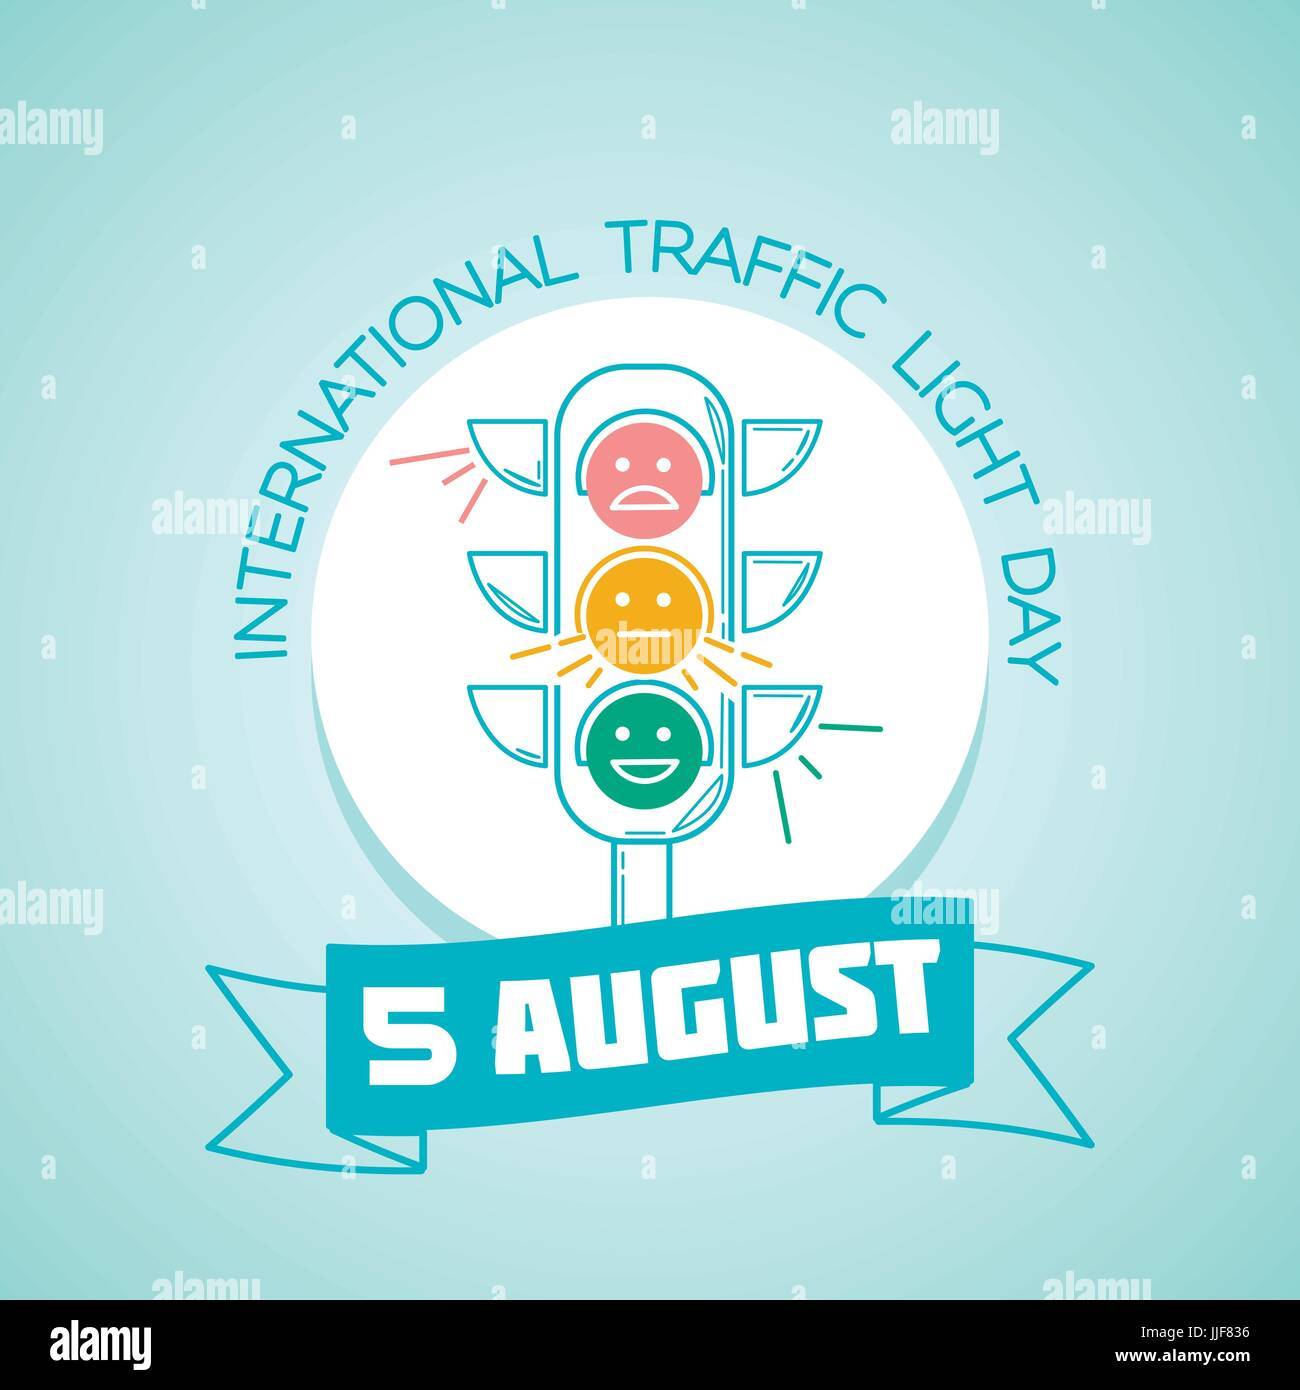 Calendar for each day on august 5 greeting card holiday stock calendar for each day on august 5 greeting card holiday international traffic light day icon in the linear style kristyandbryce Images